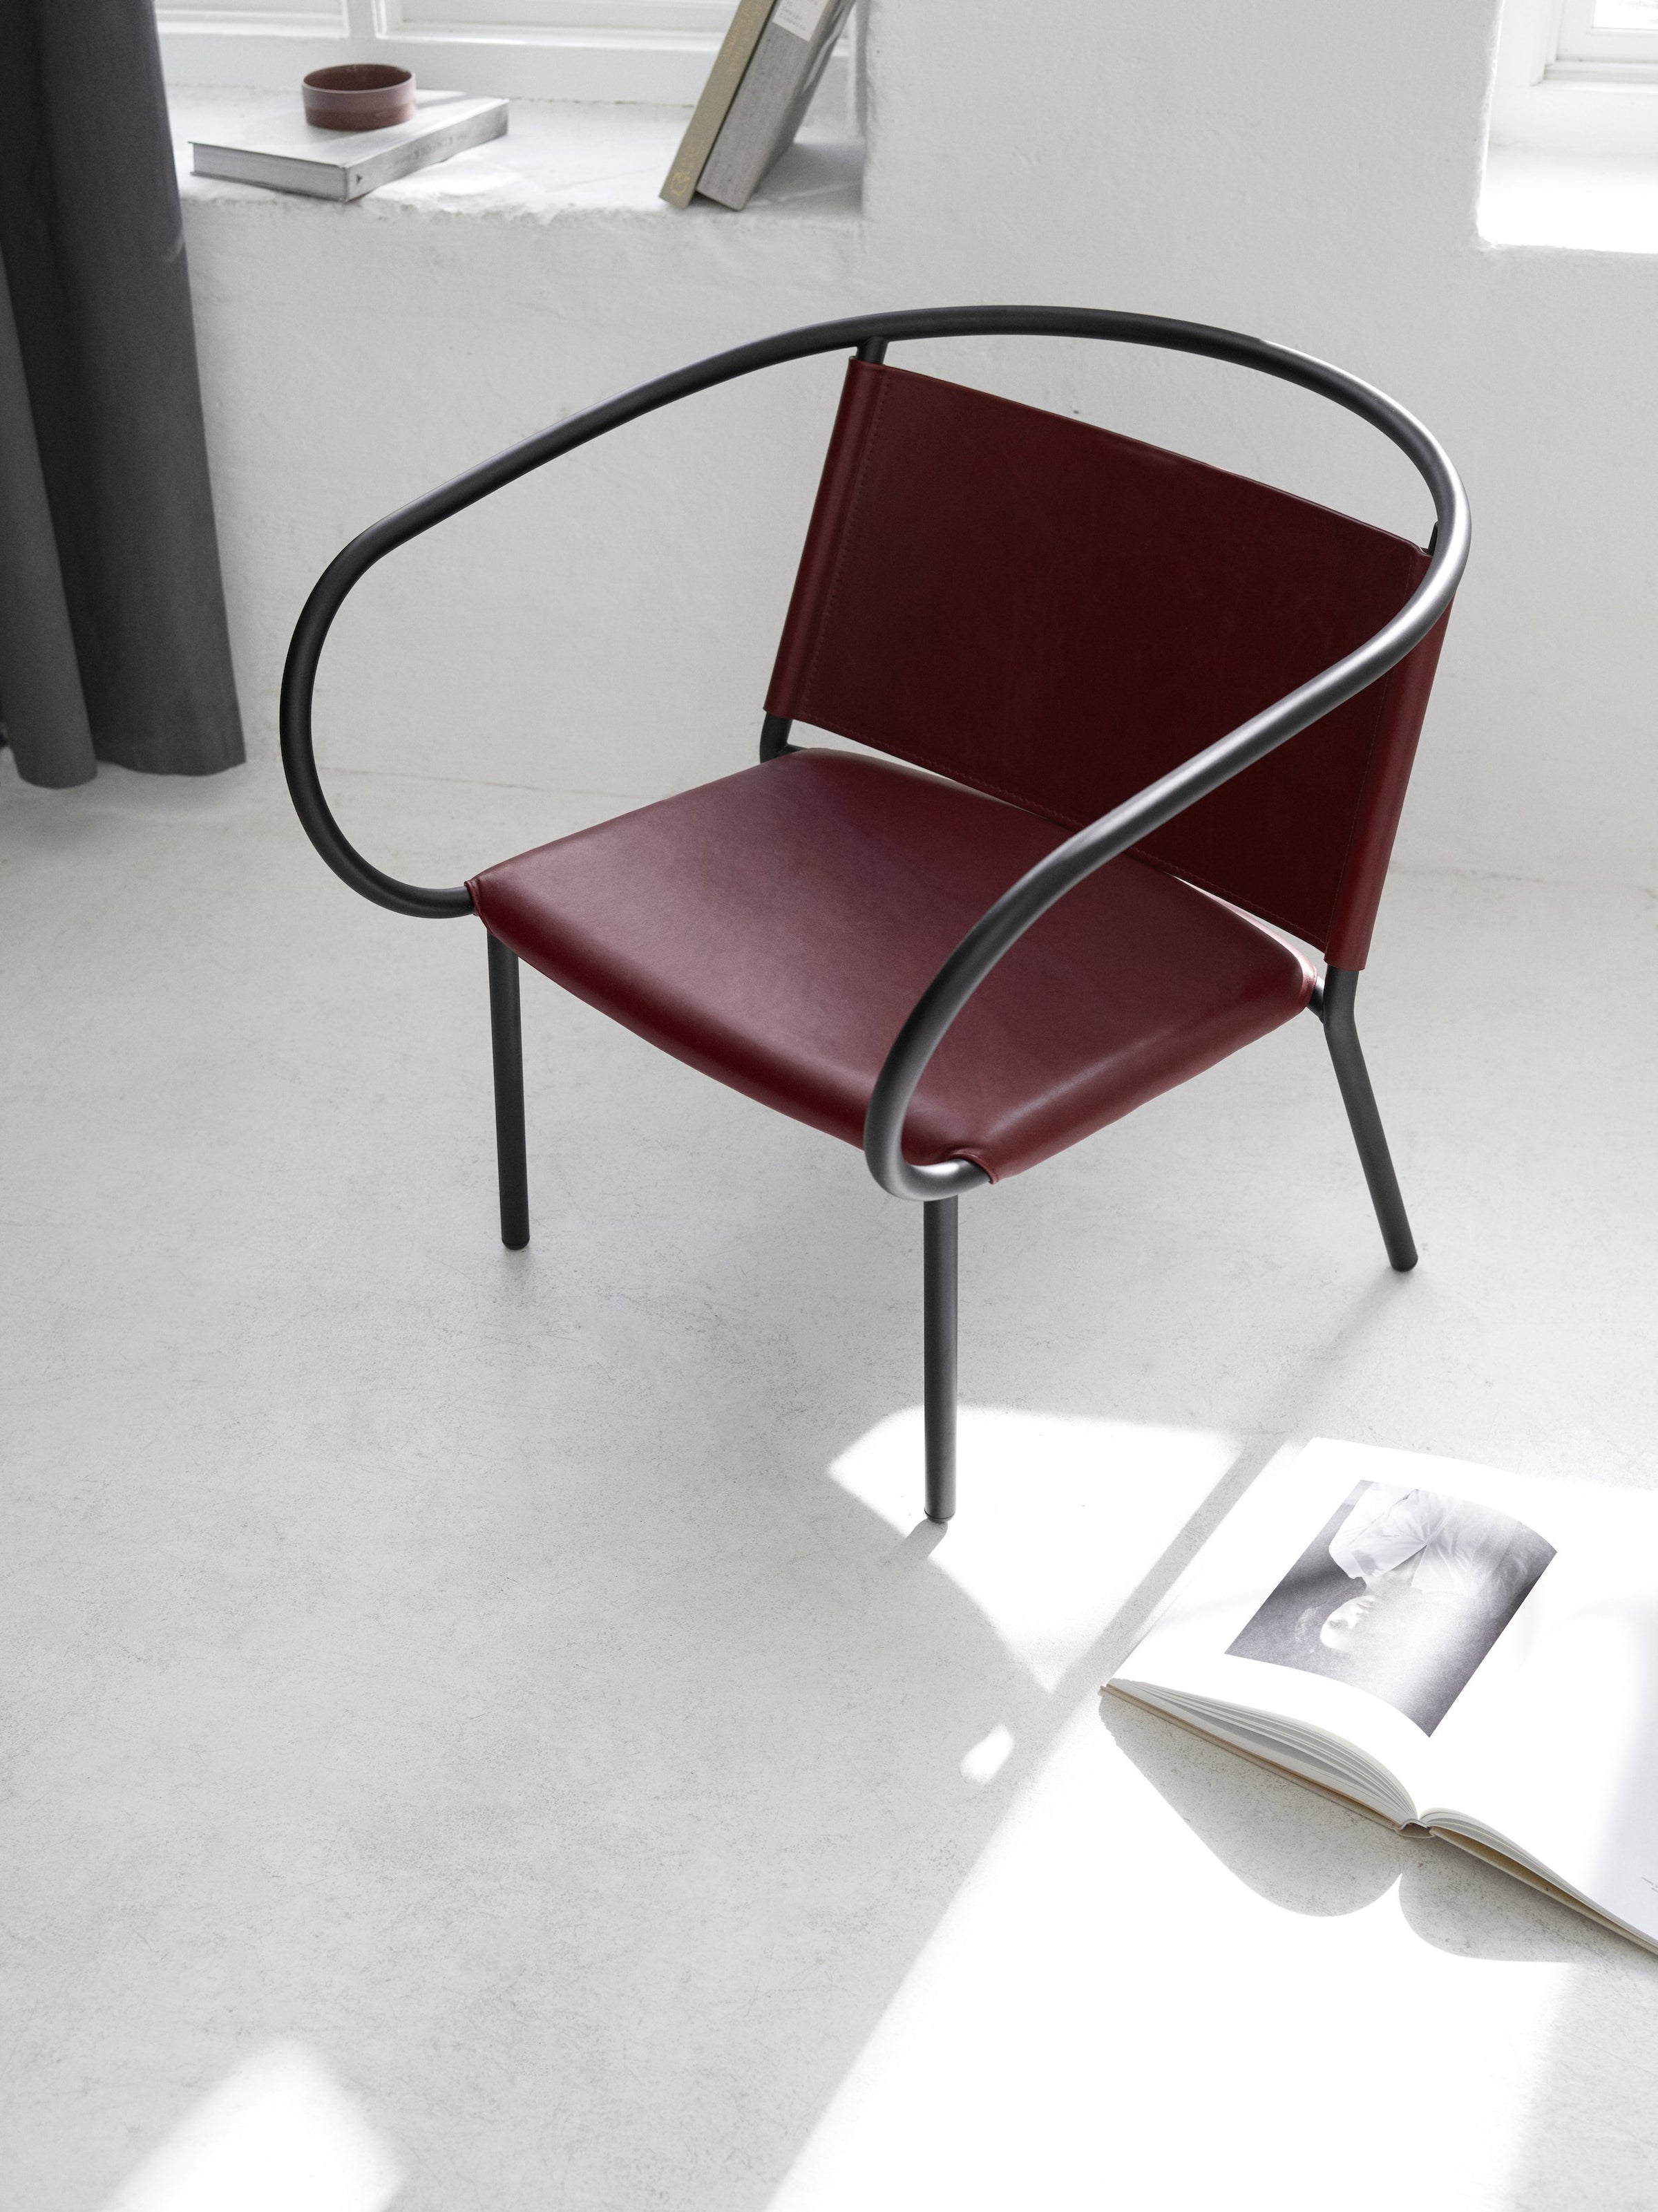 Afteroom Lounge Chair-Afteroom-Menu-Red Leather-danish-interior-furniture-denmark-Average-design-toronto-canada